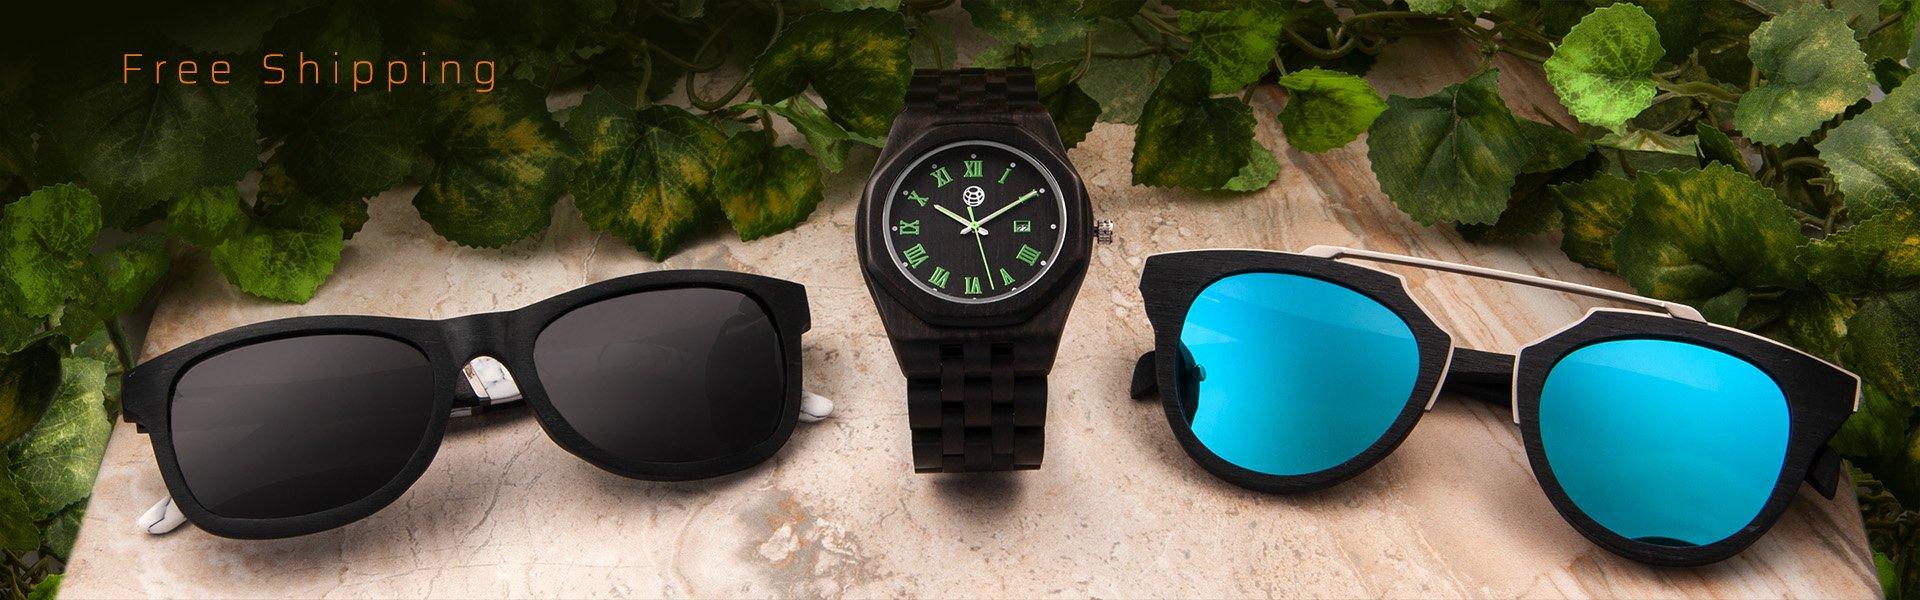 Earth Wood Watches - Save up to 65%